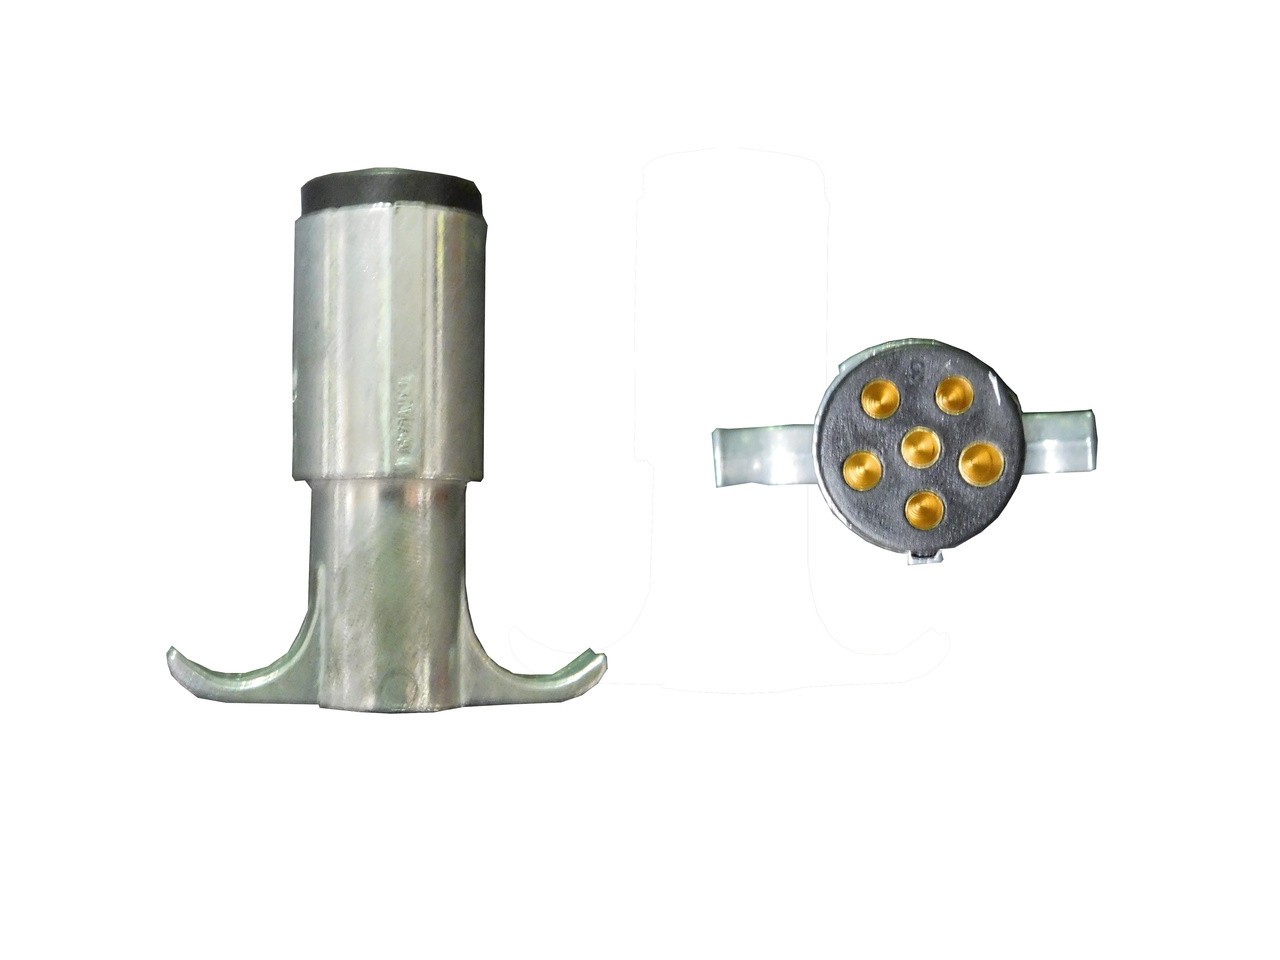 hight resolution of clearance 6 pin round trailer connector male price 8 99 image 1